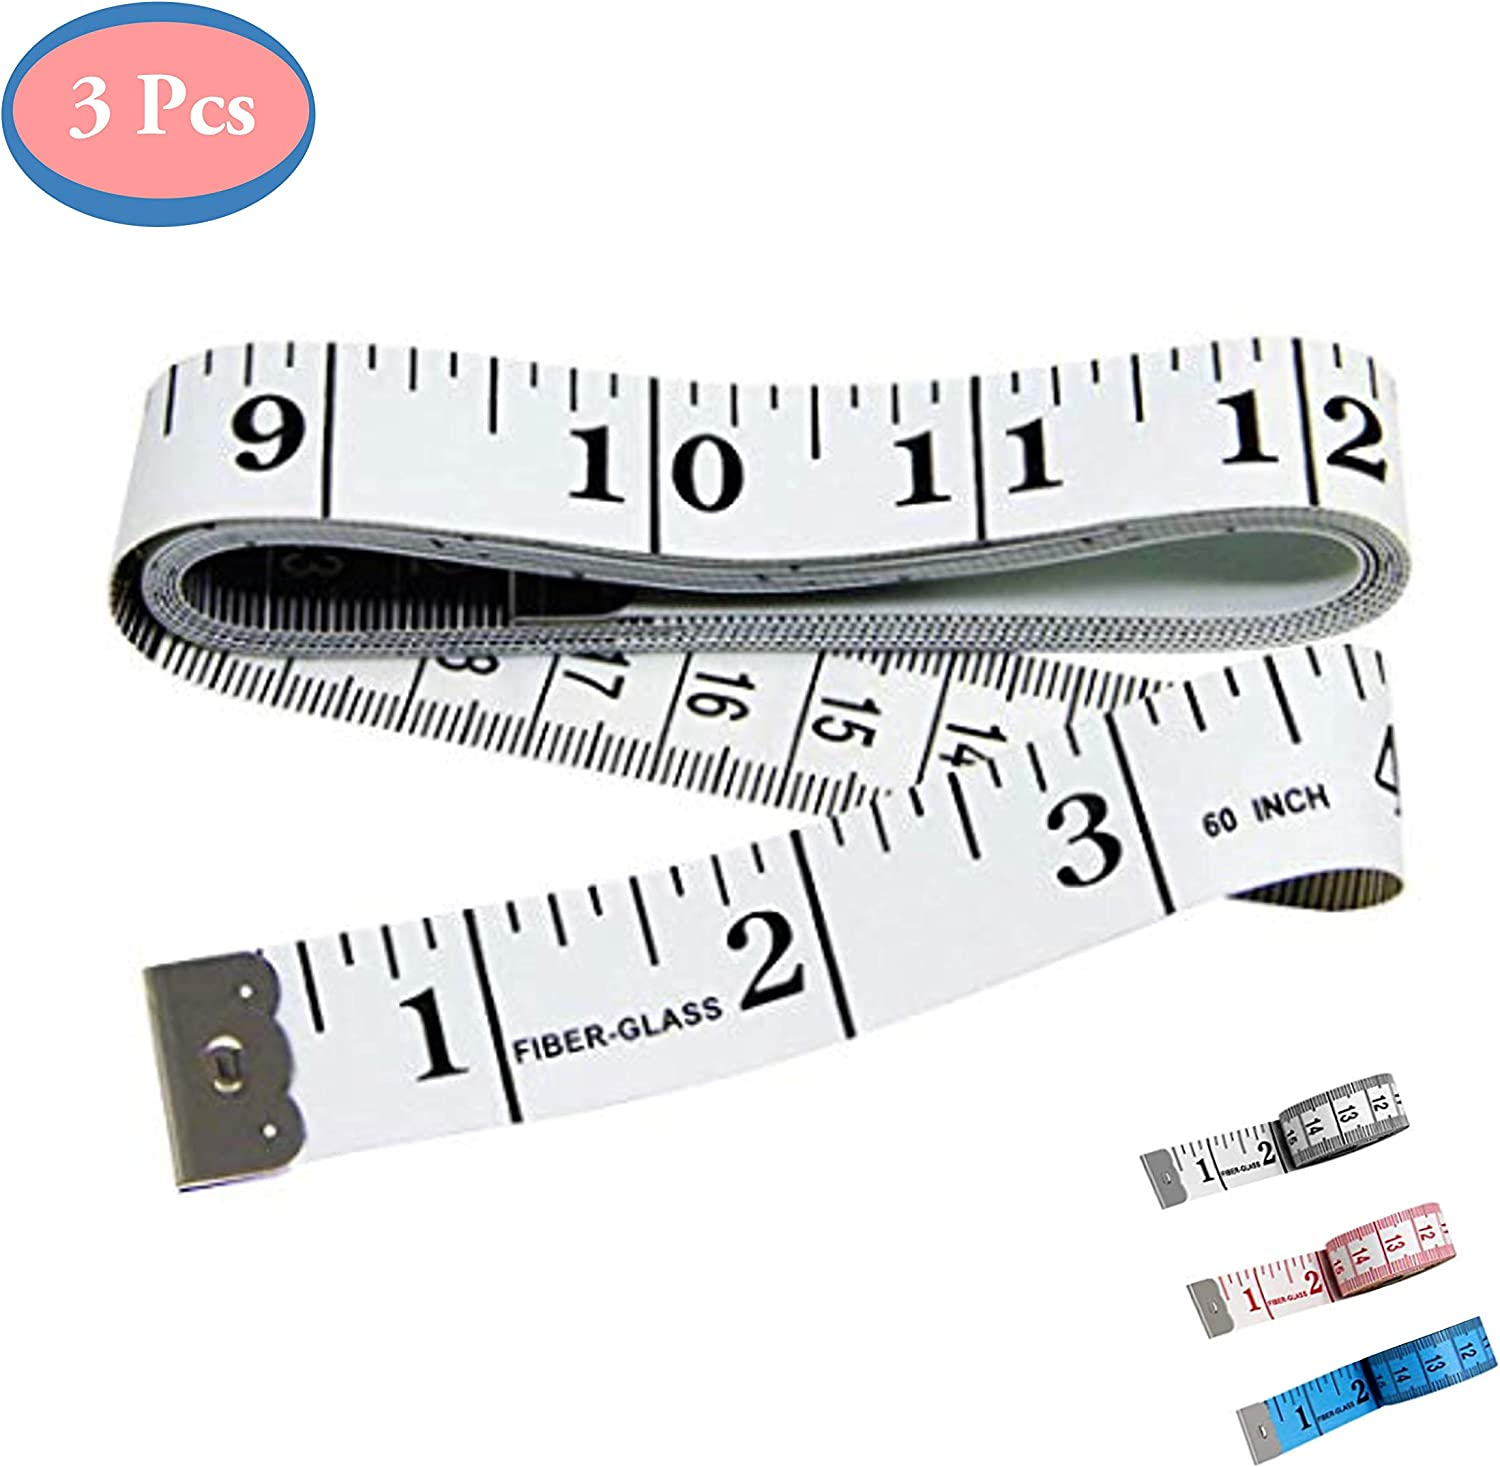 1 Plus 2 Measuring Tape for Body Measurements 3 PCS Double-Scale 60-Inch//150cm Soft Tape Measure Ruler Bulk for Sewing Tailor Cloth,Medical Measurement,Body Measurements Multicolors